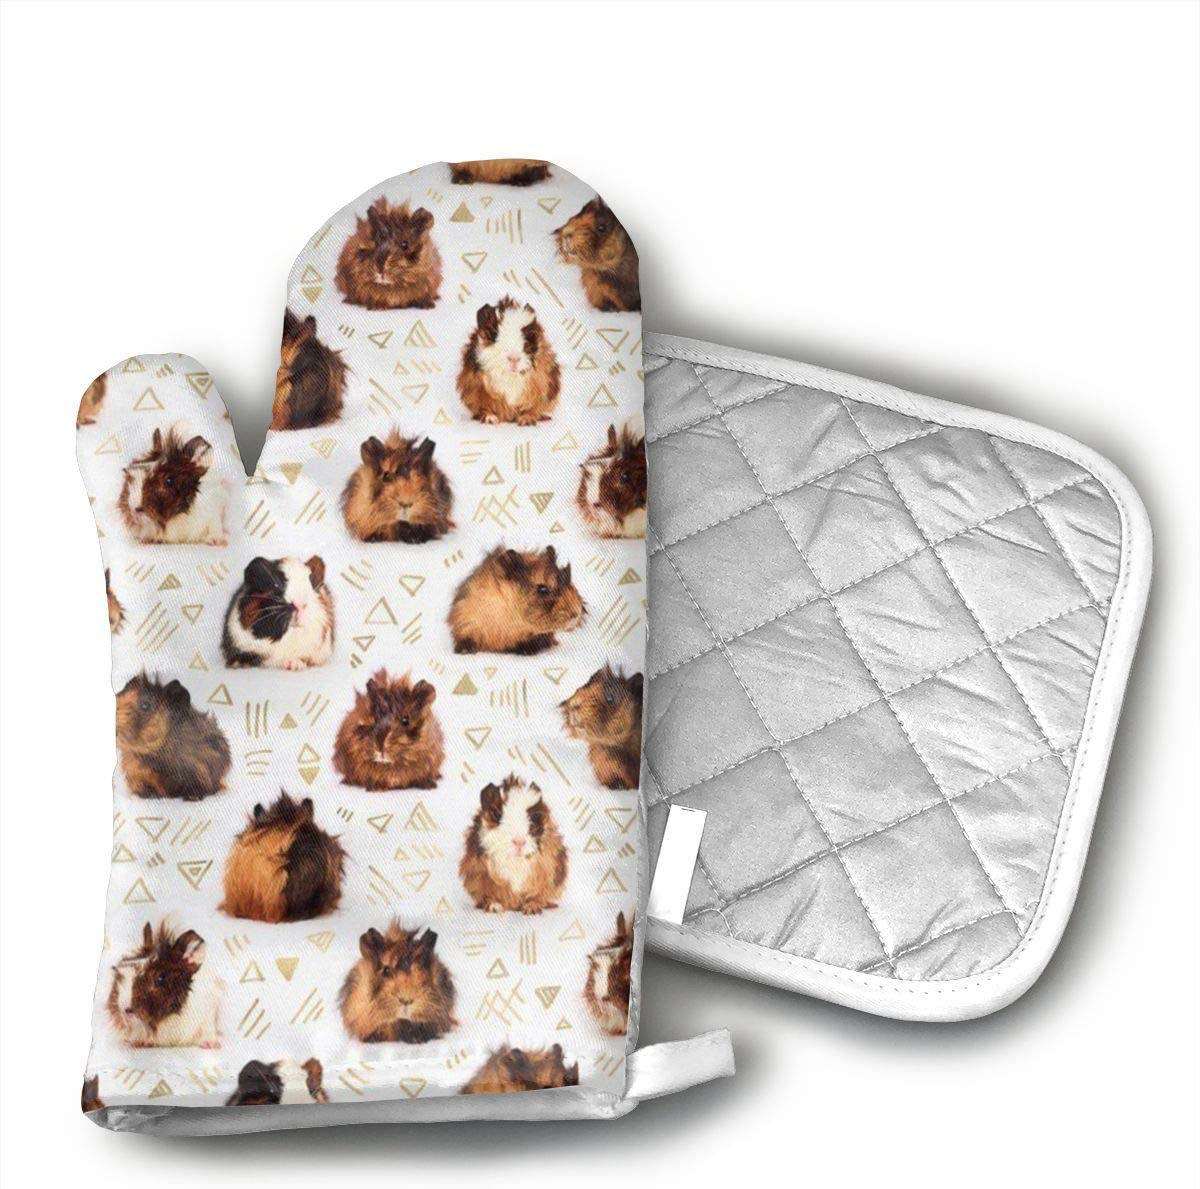 HGUIDHG Guinea Pigs Oven Mitts+Insulated Square Mat,Heat Resistant Kitchen Gloves Soft Insulated Deep Pockets, Non-Slip Handles